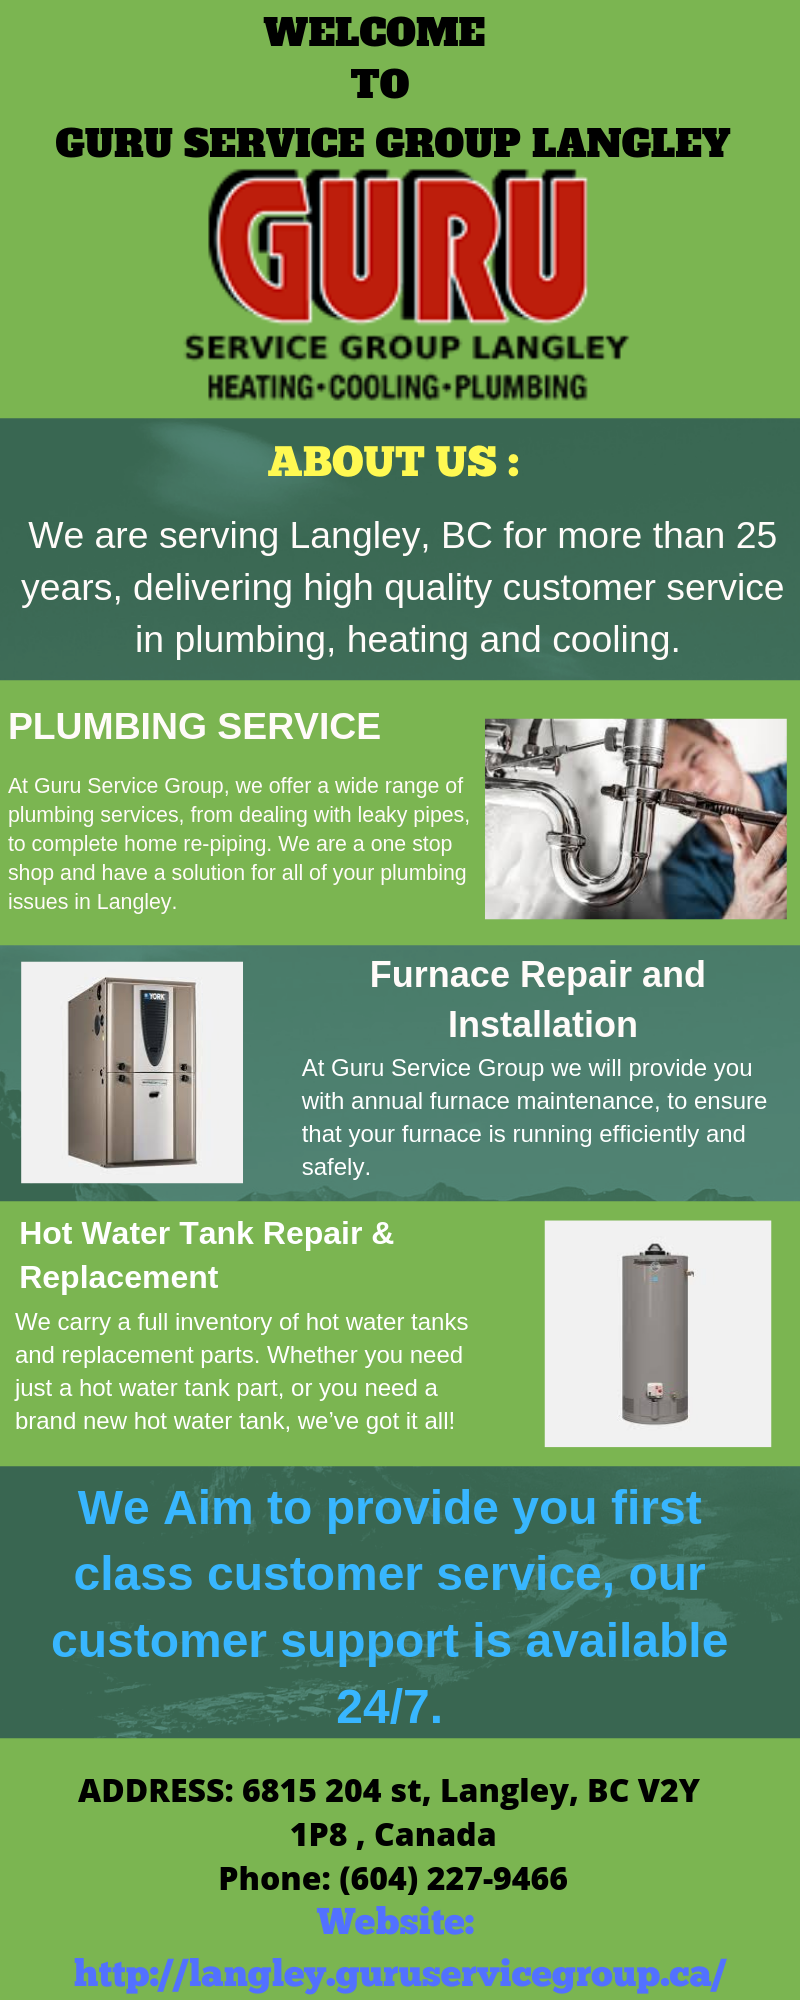 Is Your Furnace Is Not Working Properly And You Are Seeking Someone For Help Contact Guru Service Group Langley As We Provide Th Heat Pump Installation Commercial Plumbing Plumbing